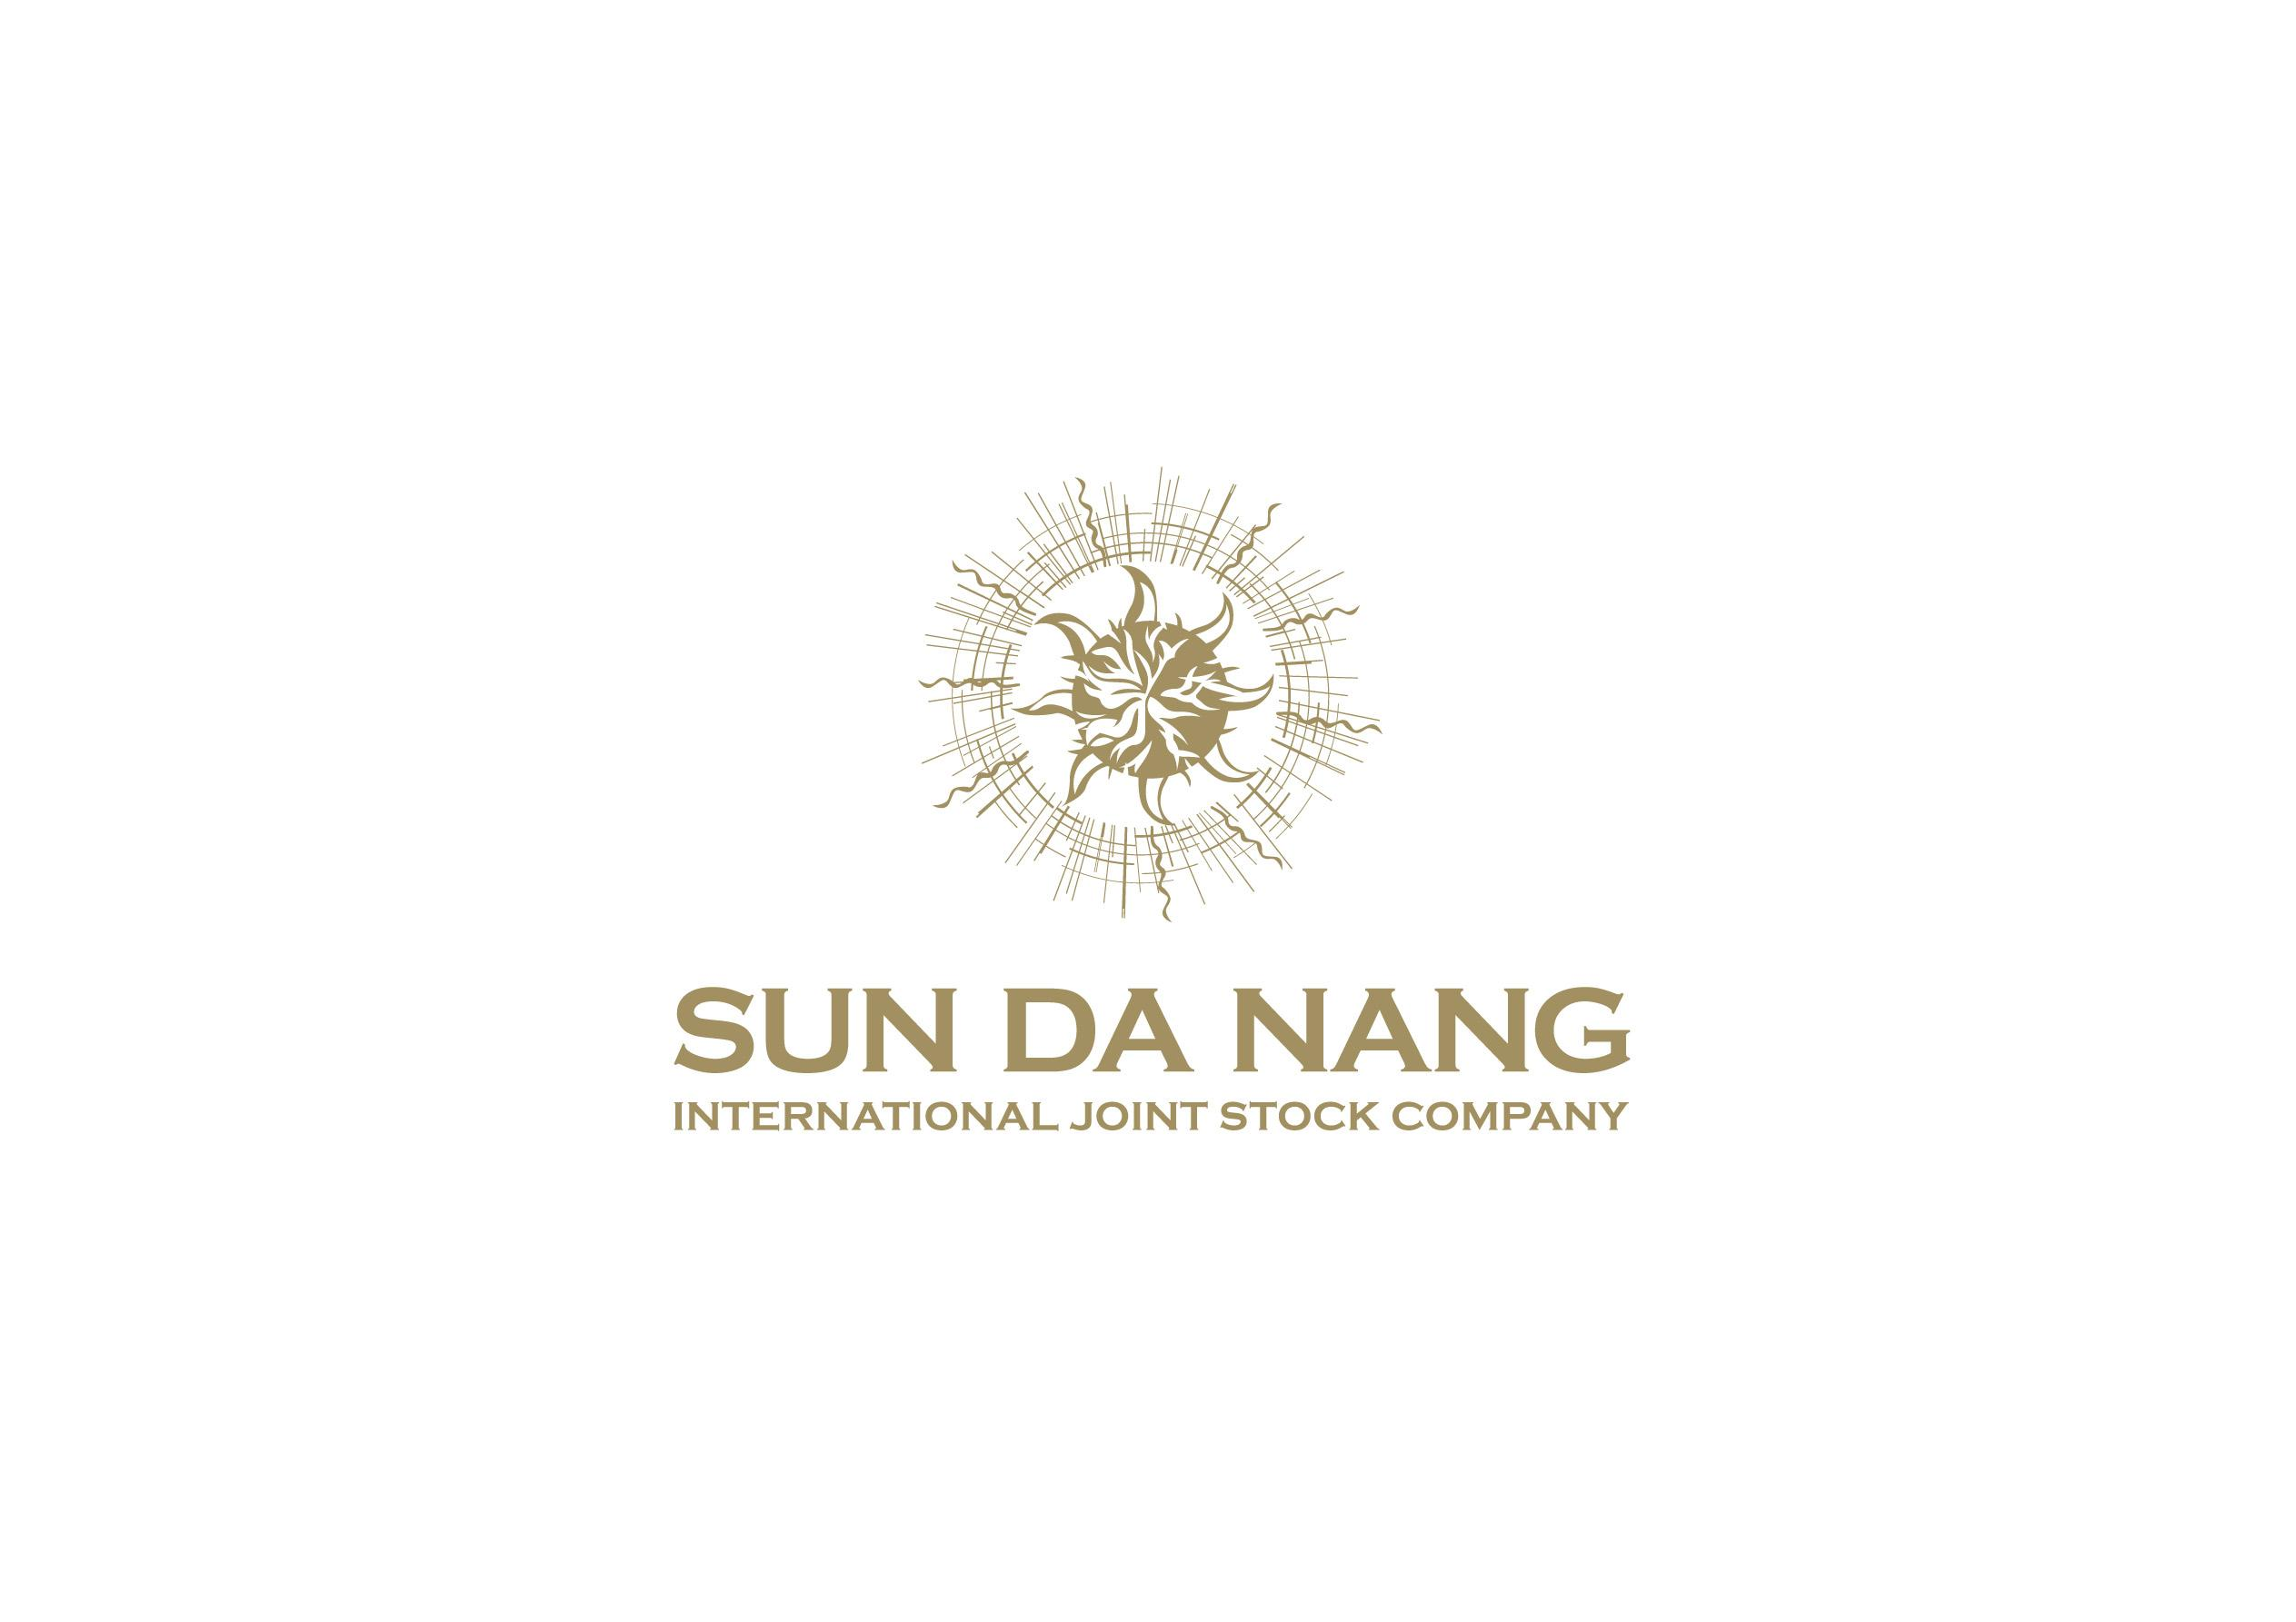 Sun Da Nang International